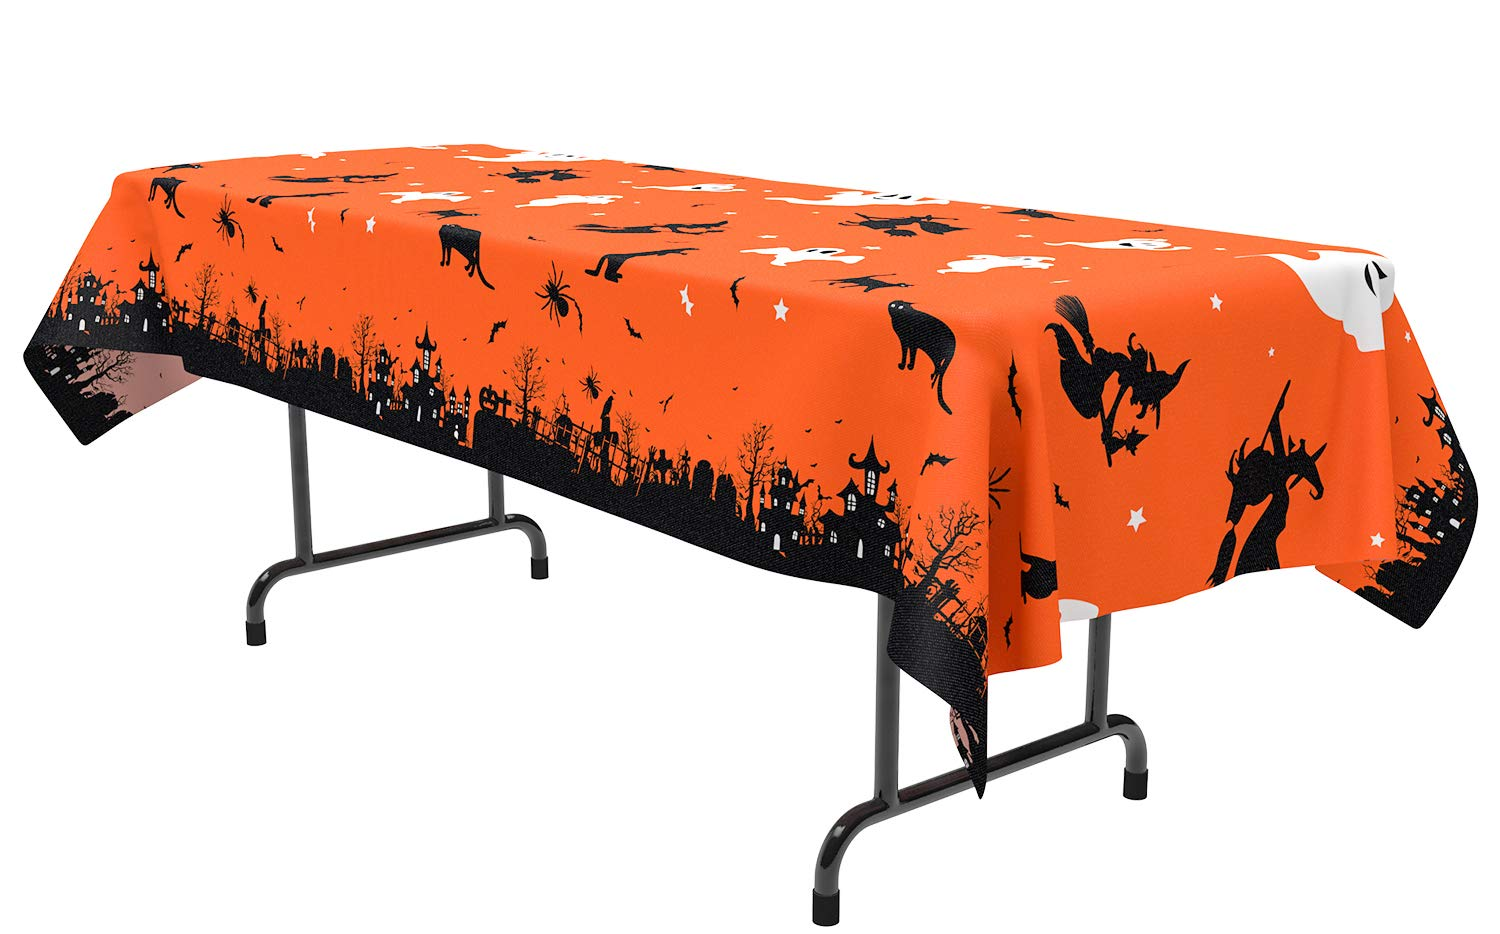 2PCS Halloween Table Cover/Cloth Decorations - Party Tablecloth Yard Haunted House Decor 90shine